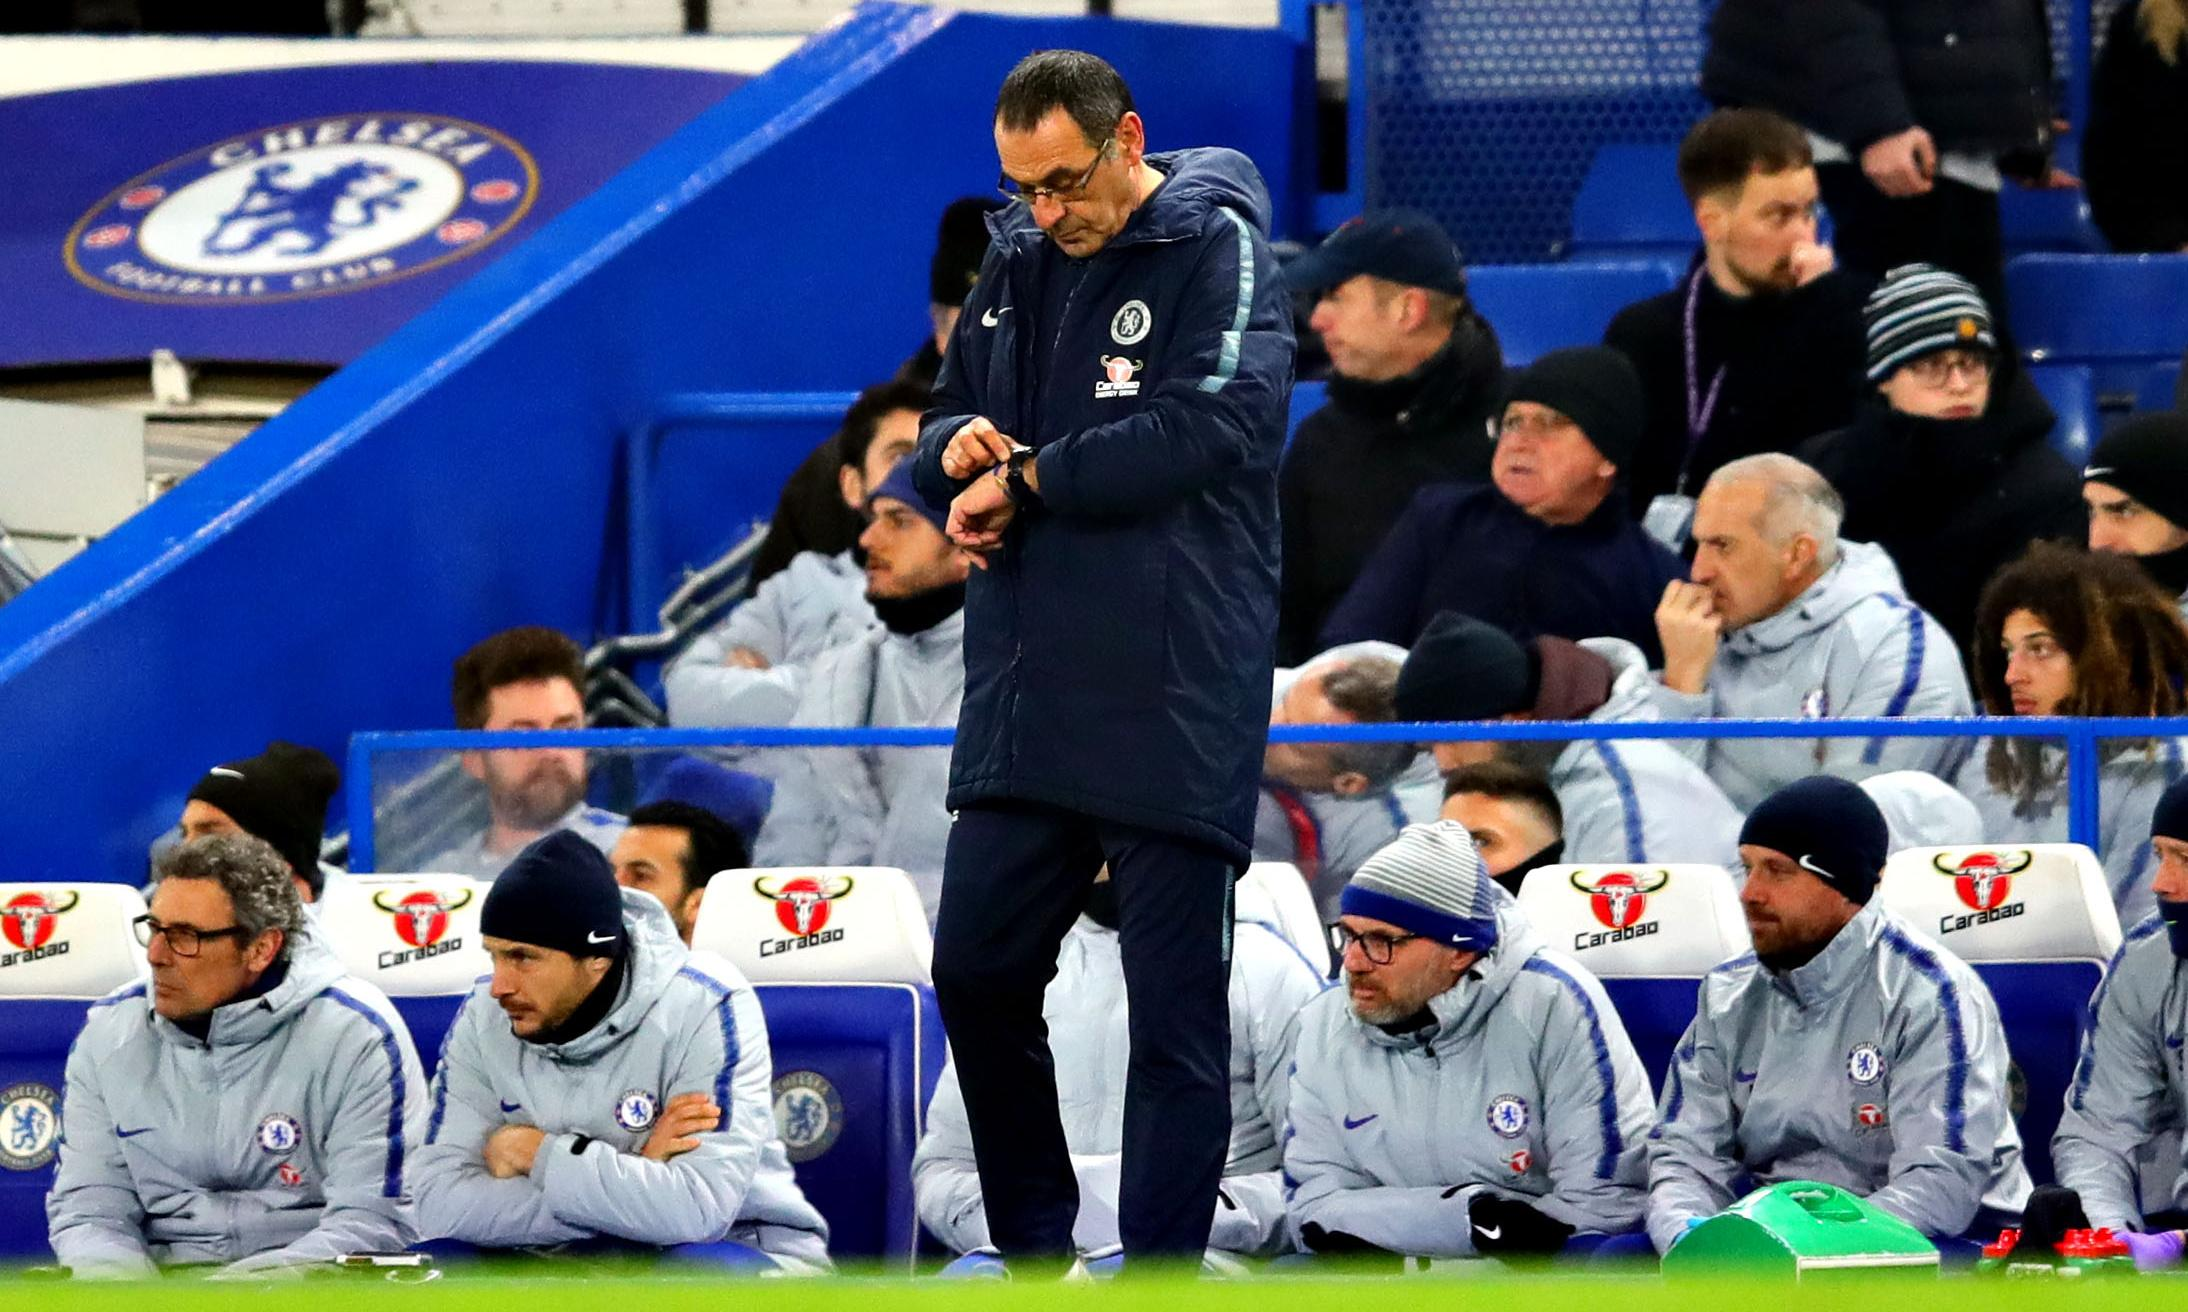 Maurizio Sarri heads to Carabao Cup final as Chelsea's dead man walking